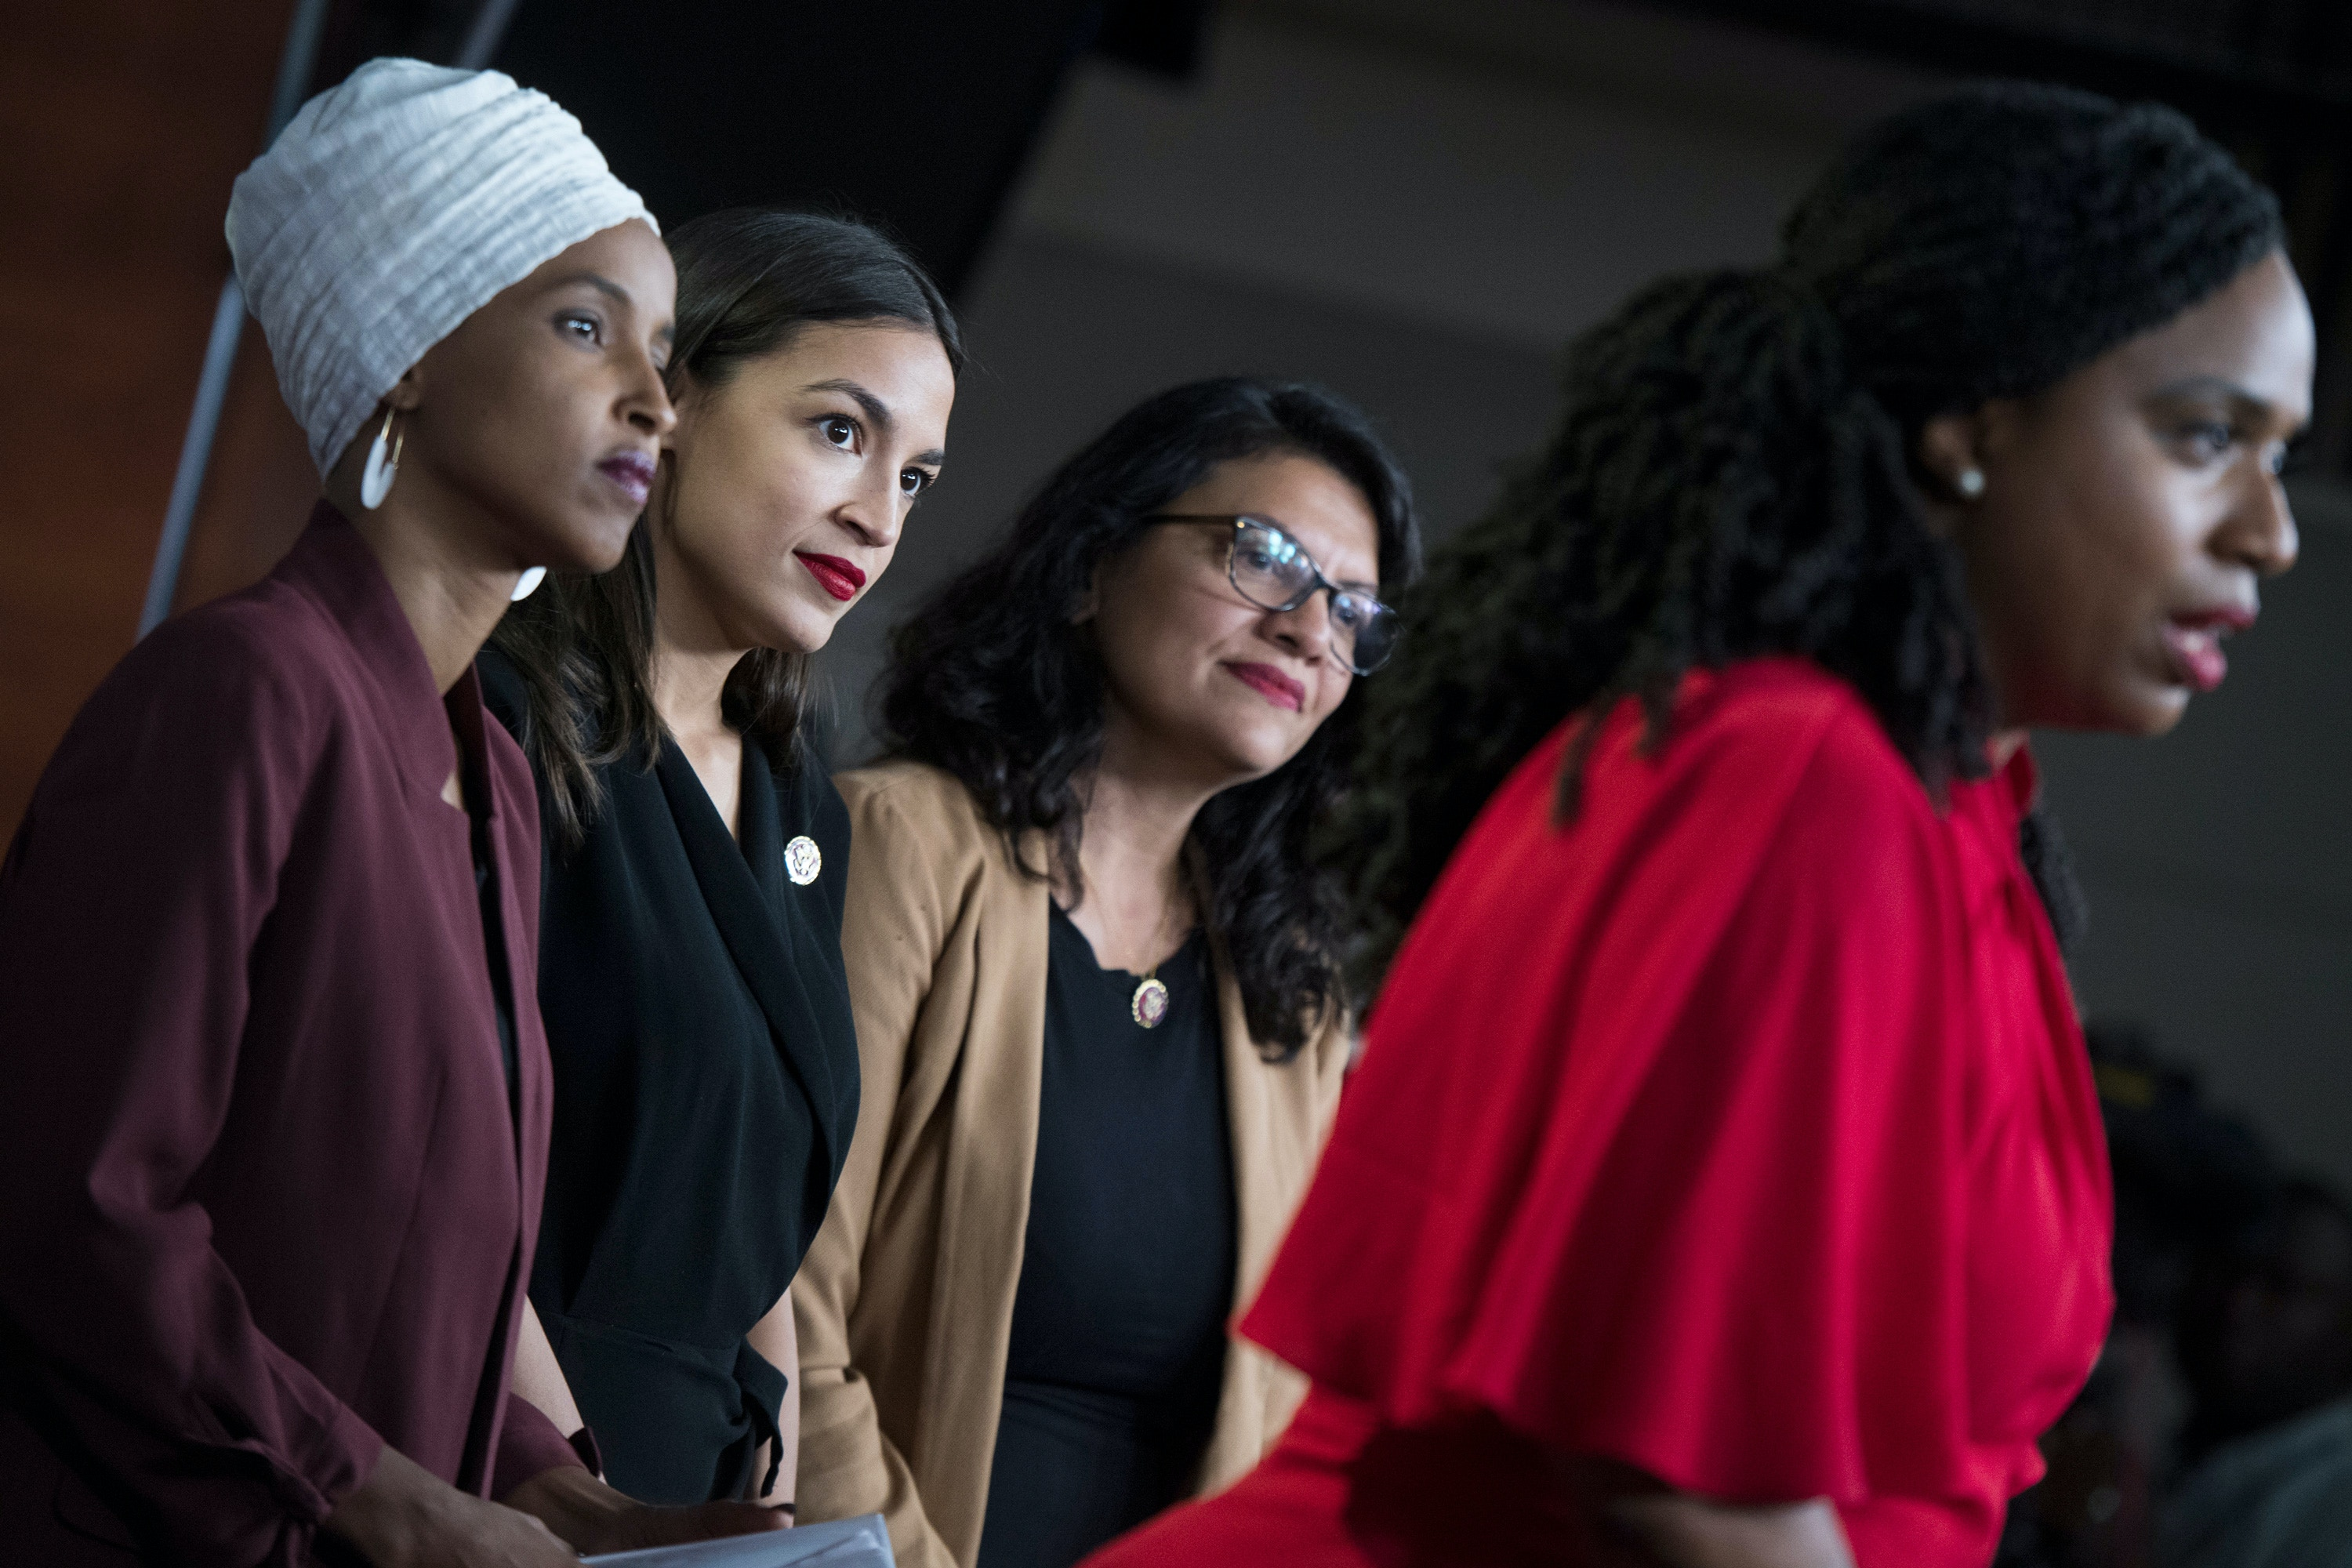 UNITED STATES - JULY 15: From left, Reps. Ilhan Omar, D-Minn., Alexandria Ocasio-Cortez, D-N.Y., Rashida Tlaib, D-Mich., and Ayanna Pressley, D-Mass., conduct a news conference in the Capitol Visitor Center responding to negative comments by President Trump that were directed at the freshman House Democrats on Monday, July 15, 2019. (Photo By Tom Williams/CQ Roll Call via AP Images)